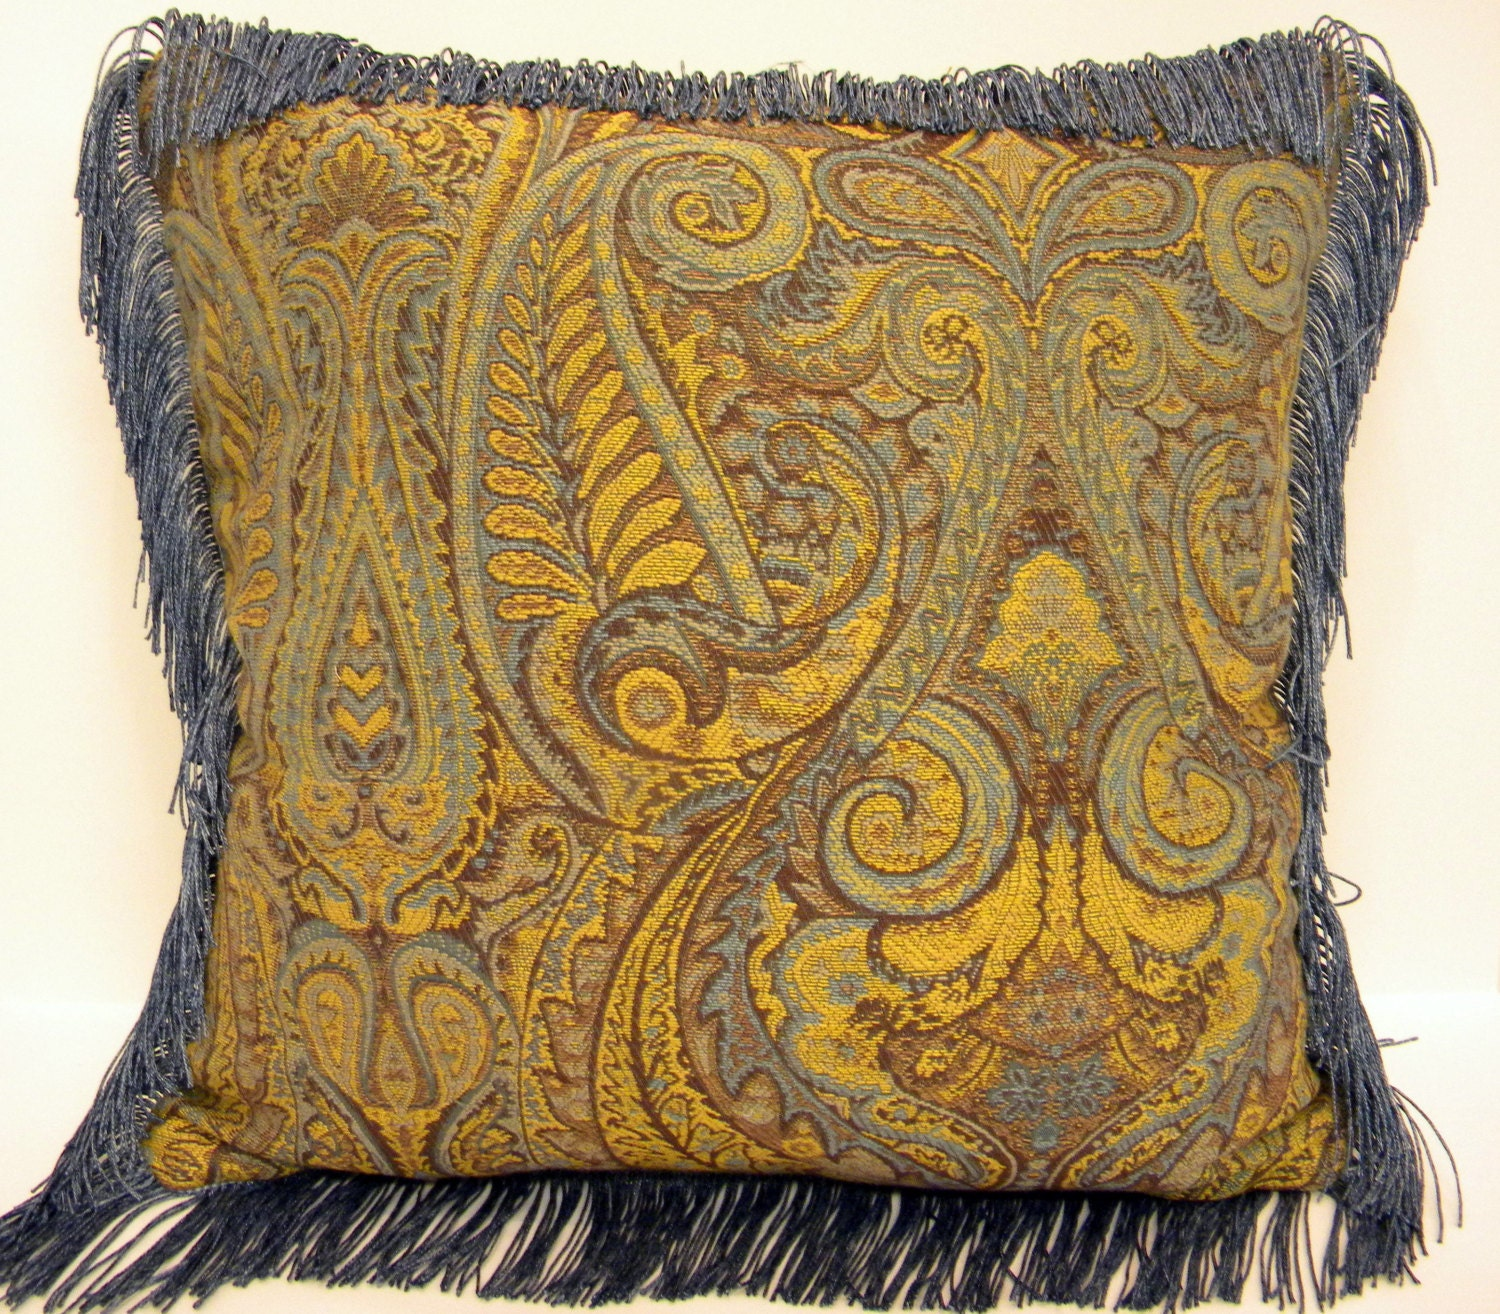 Decorative Throw Pillows With Fringe : Tapestry pillow Blue and tan pillow Fringe Pillow Decorator